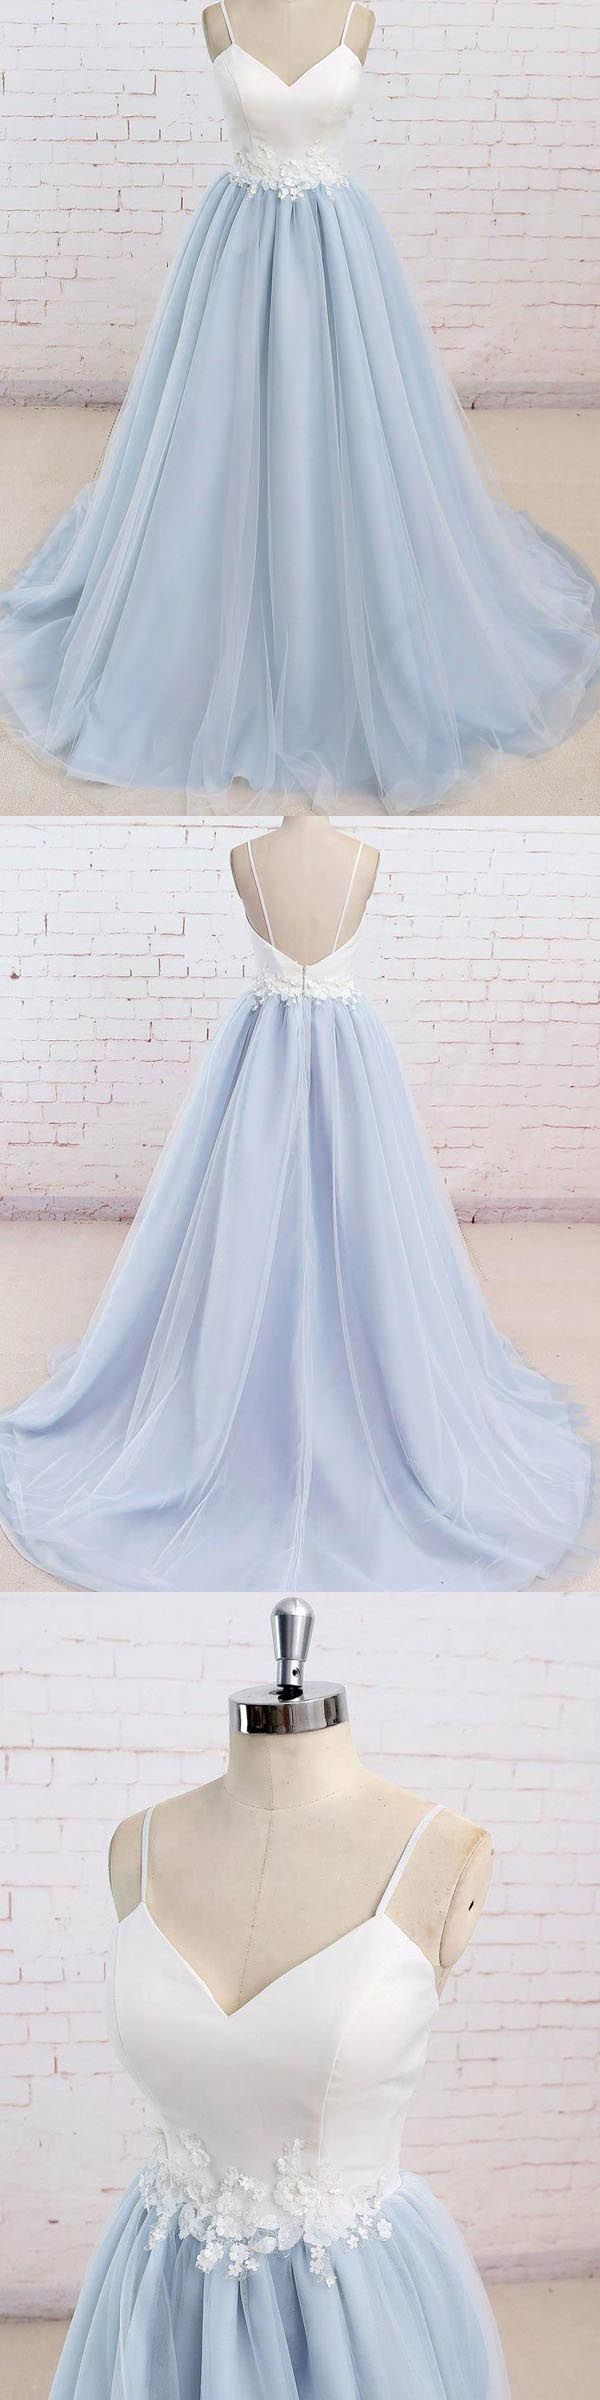 Spaghetti Straps Sweep Train Backless Lavender Tulle Prom Dress PG498 #prom #dress #evening #pgmdress #party #fashion